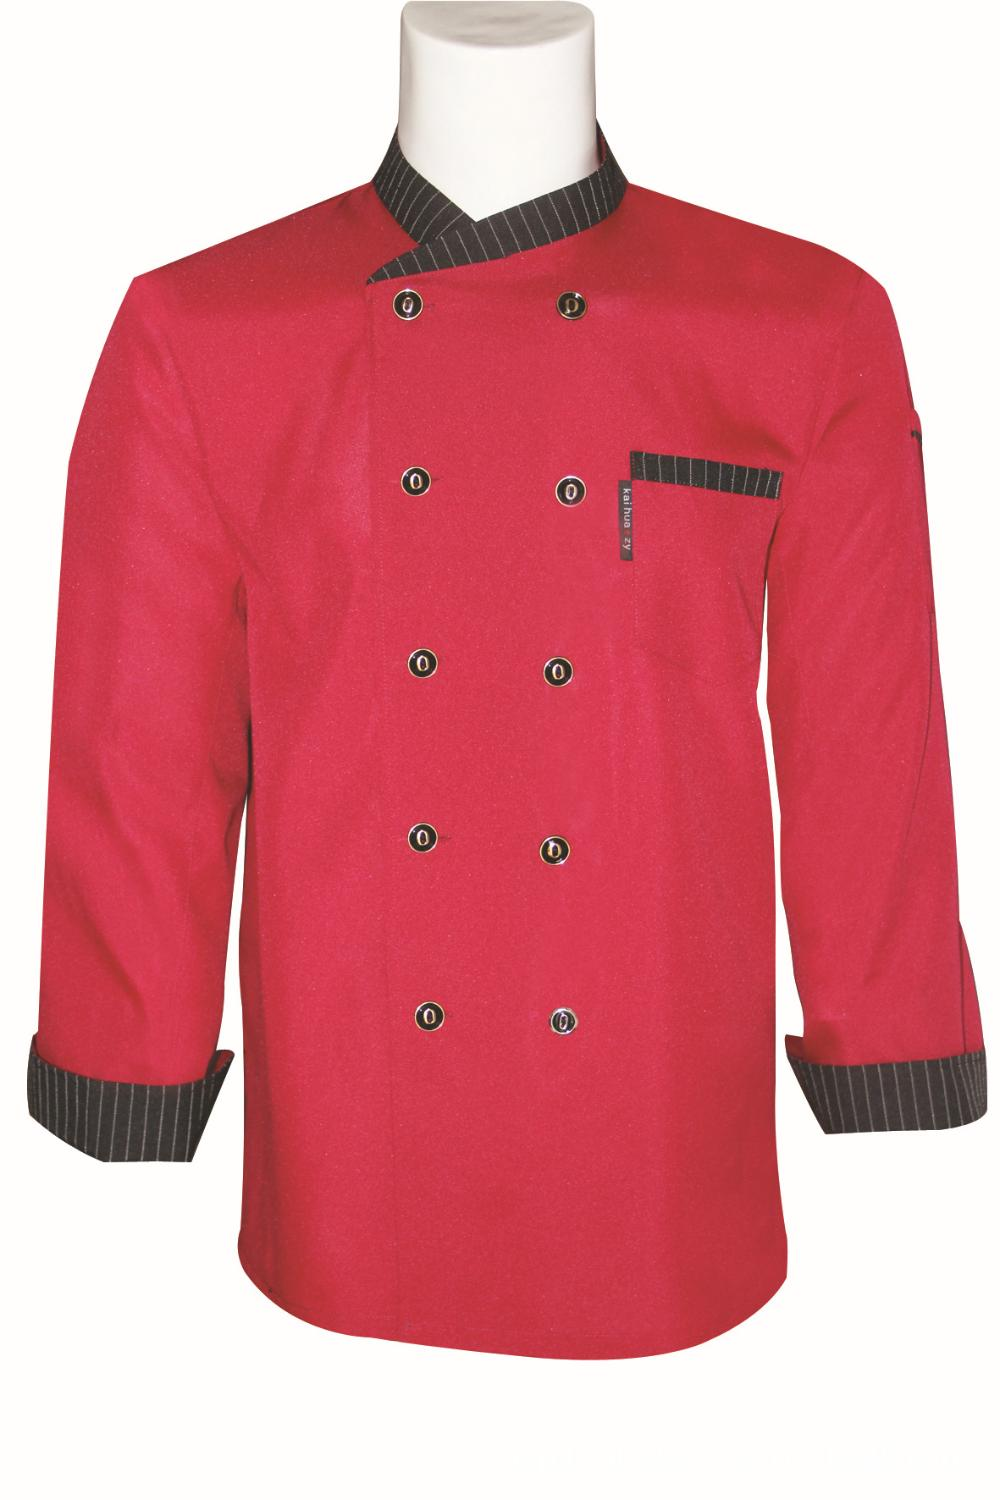 Fall/winter hotel chefs clothing long sleeve new chef clothing Workwear(China (Mainland))